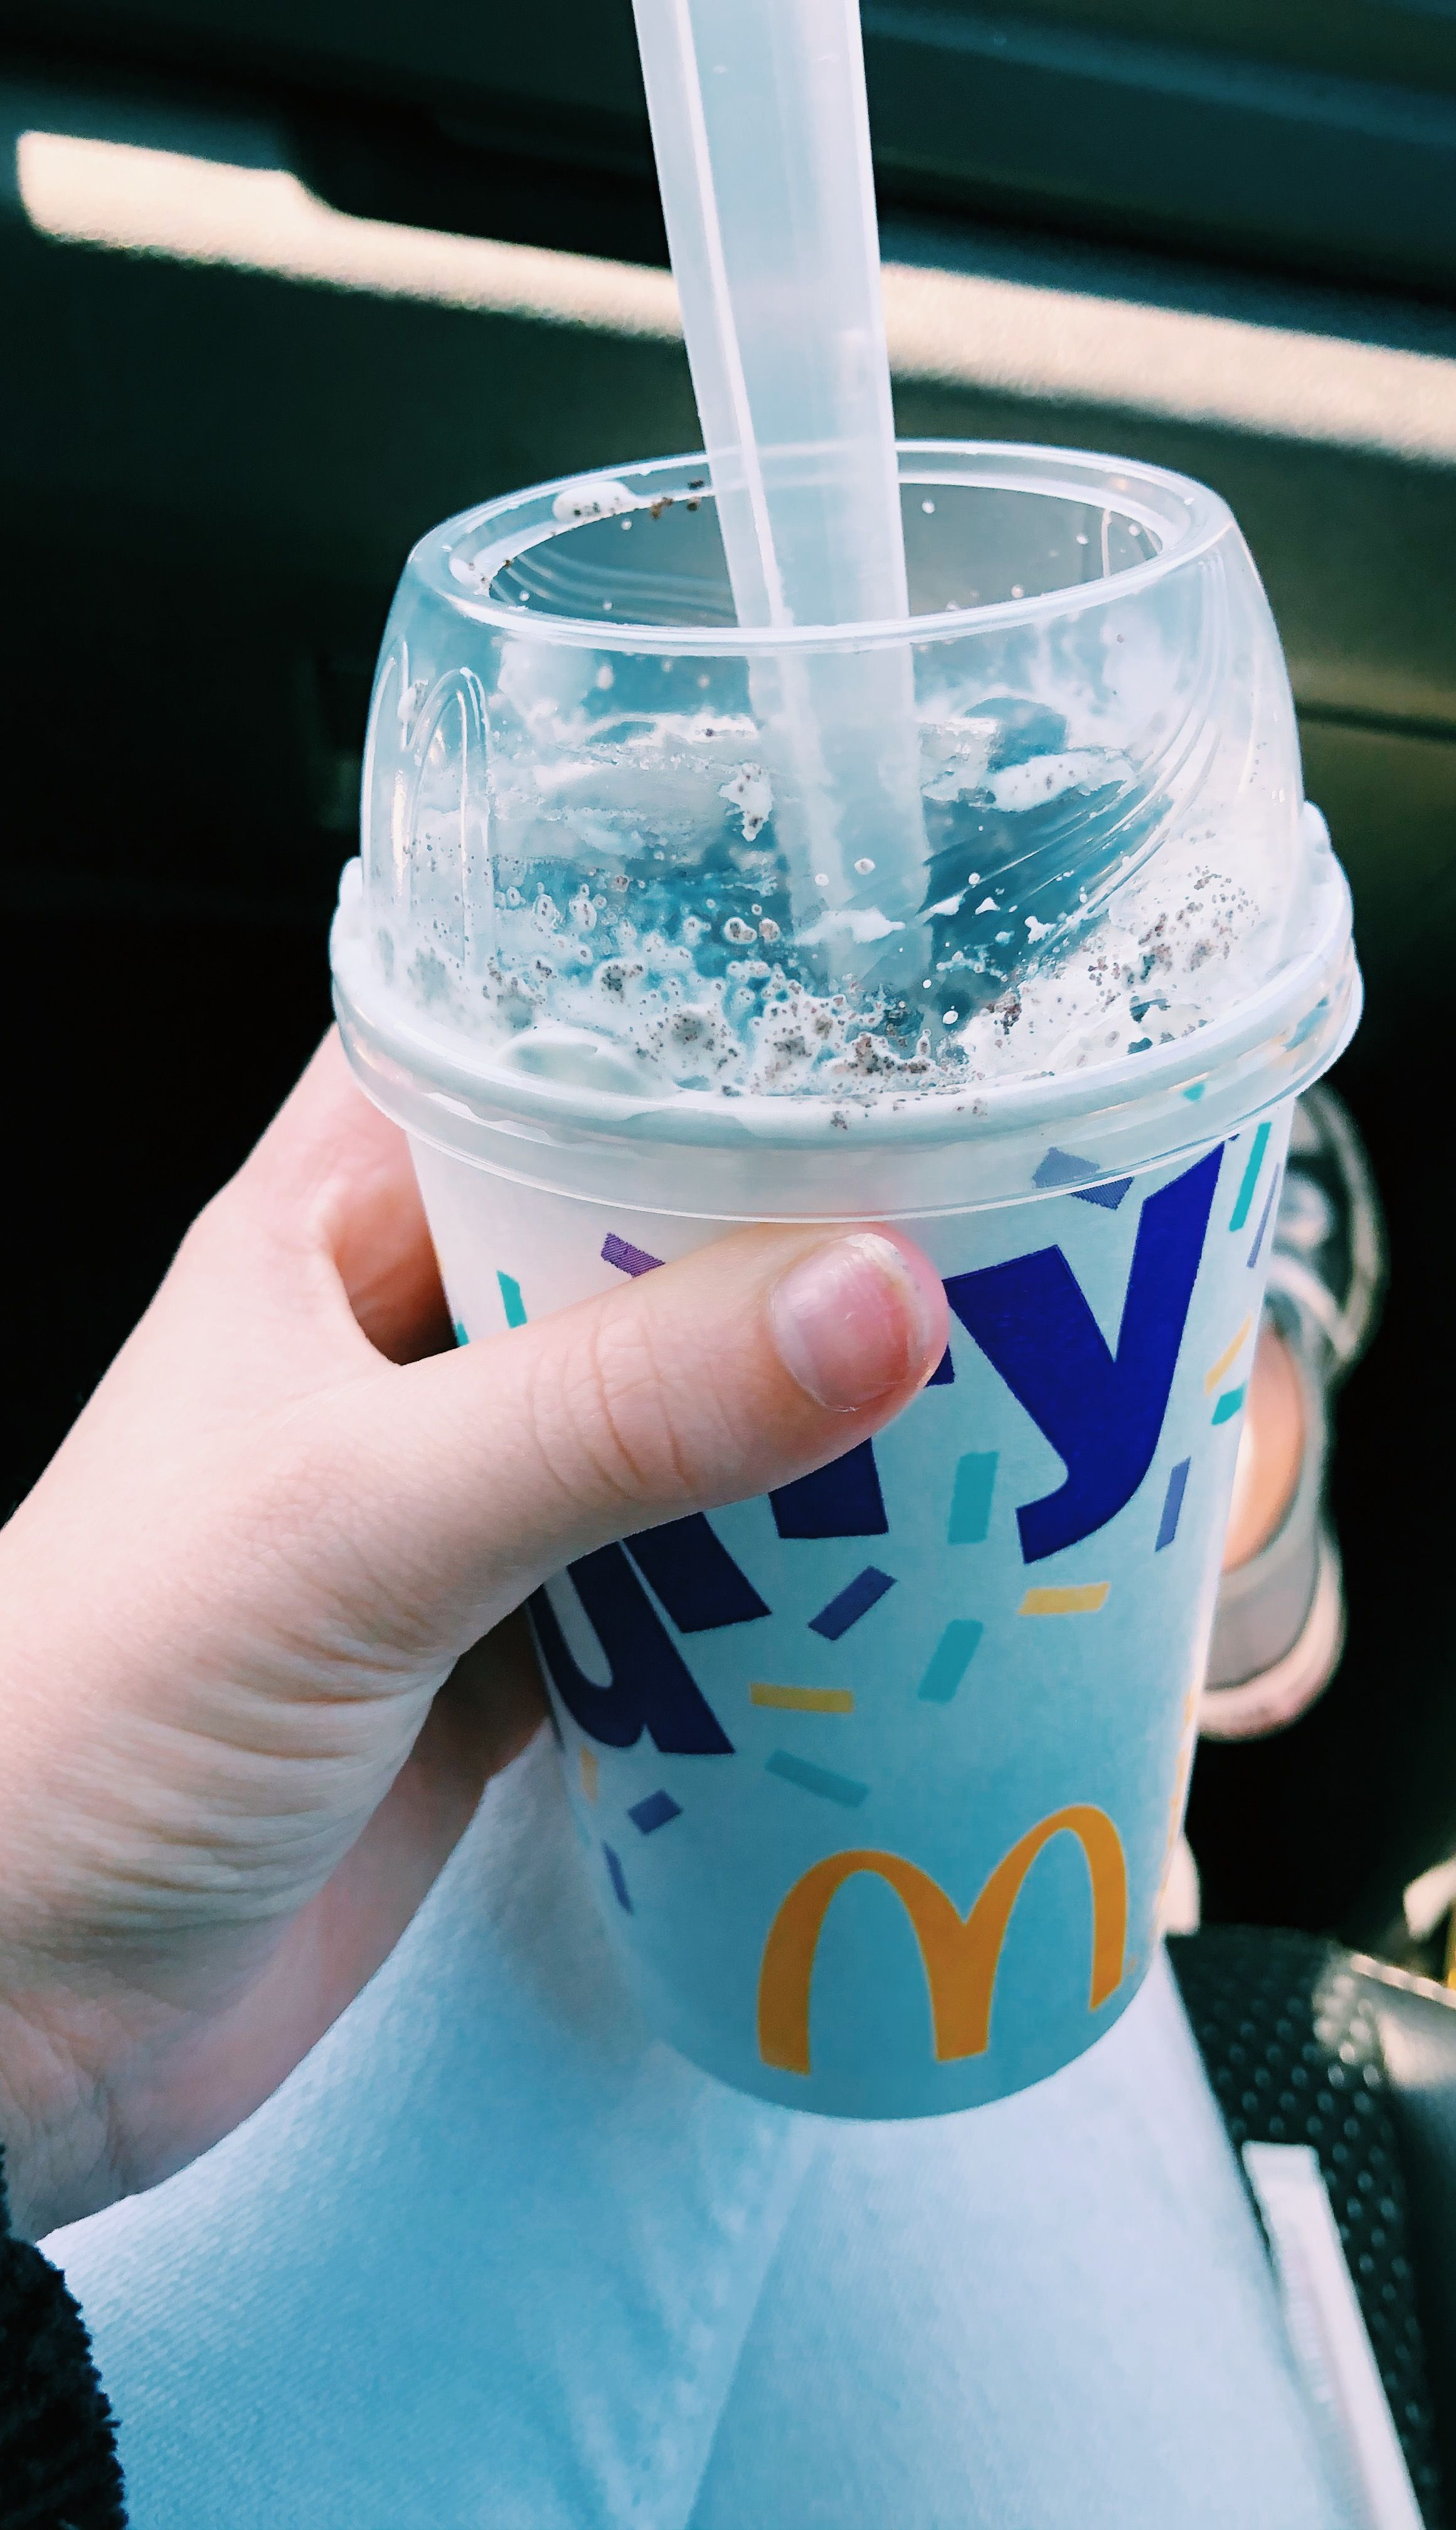 Aesthetic McFlurry in 2020 Mcflurry, Summer pictures, Yummy